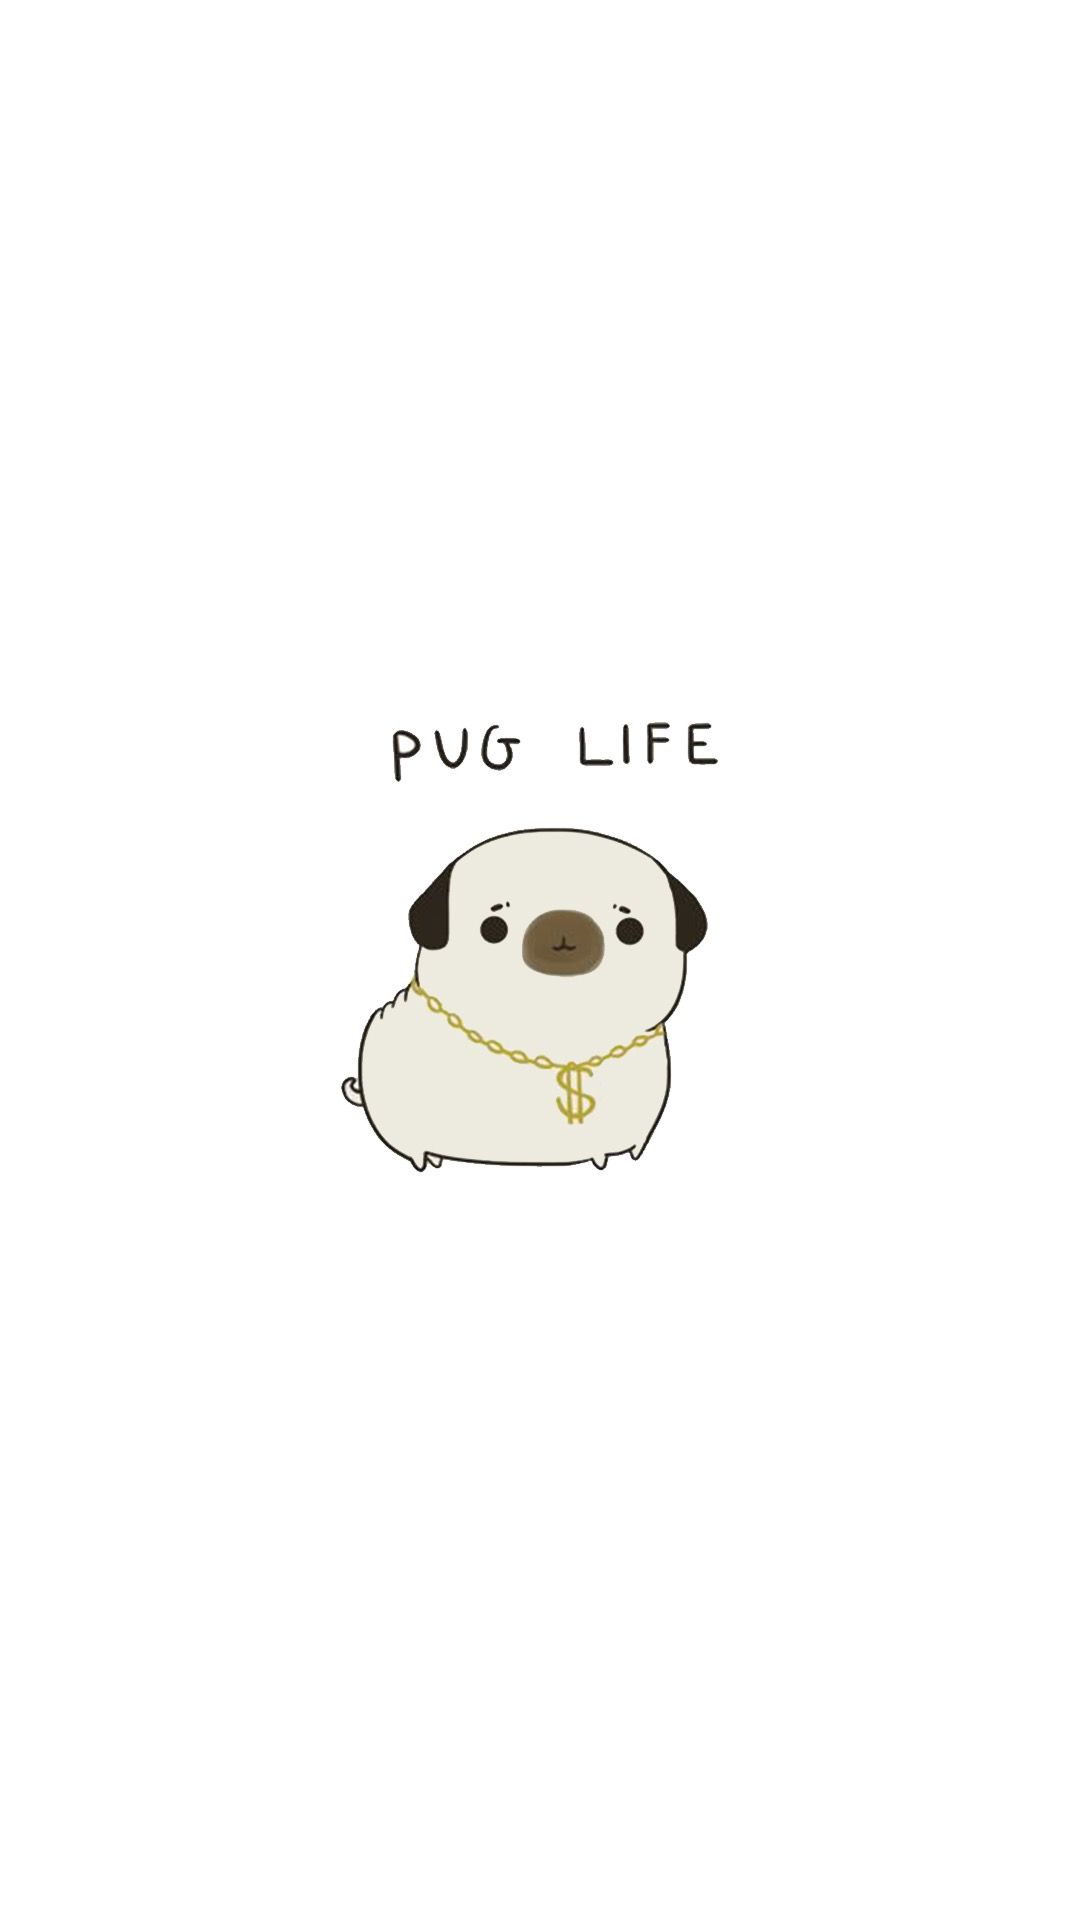 1080x1920 Frases | sshhhh | Kawaii wallpaper, Pug wallpaper, Cellphone ...